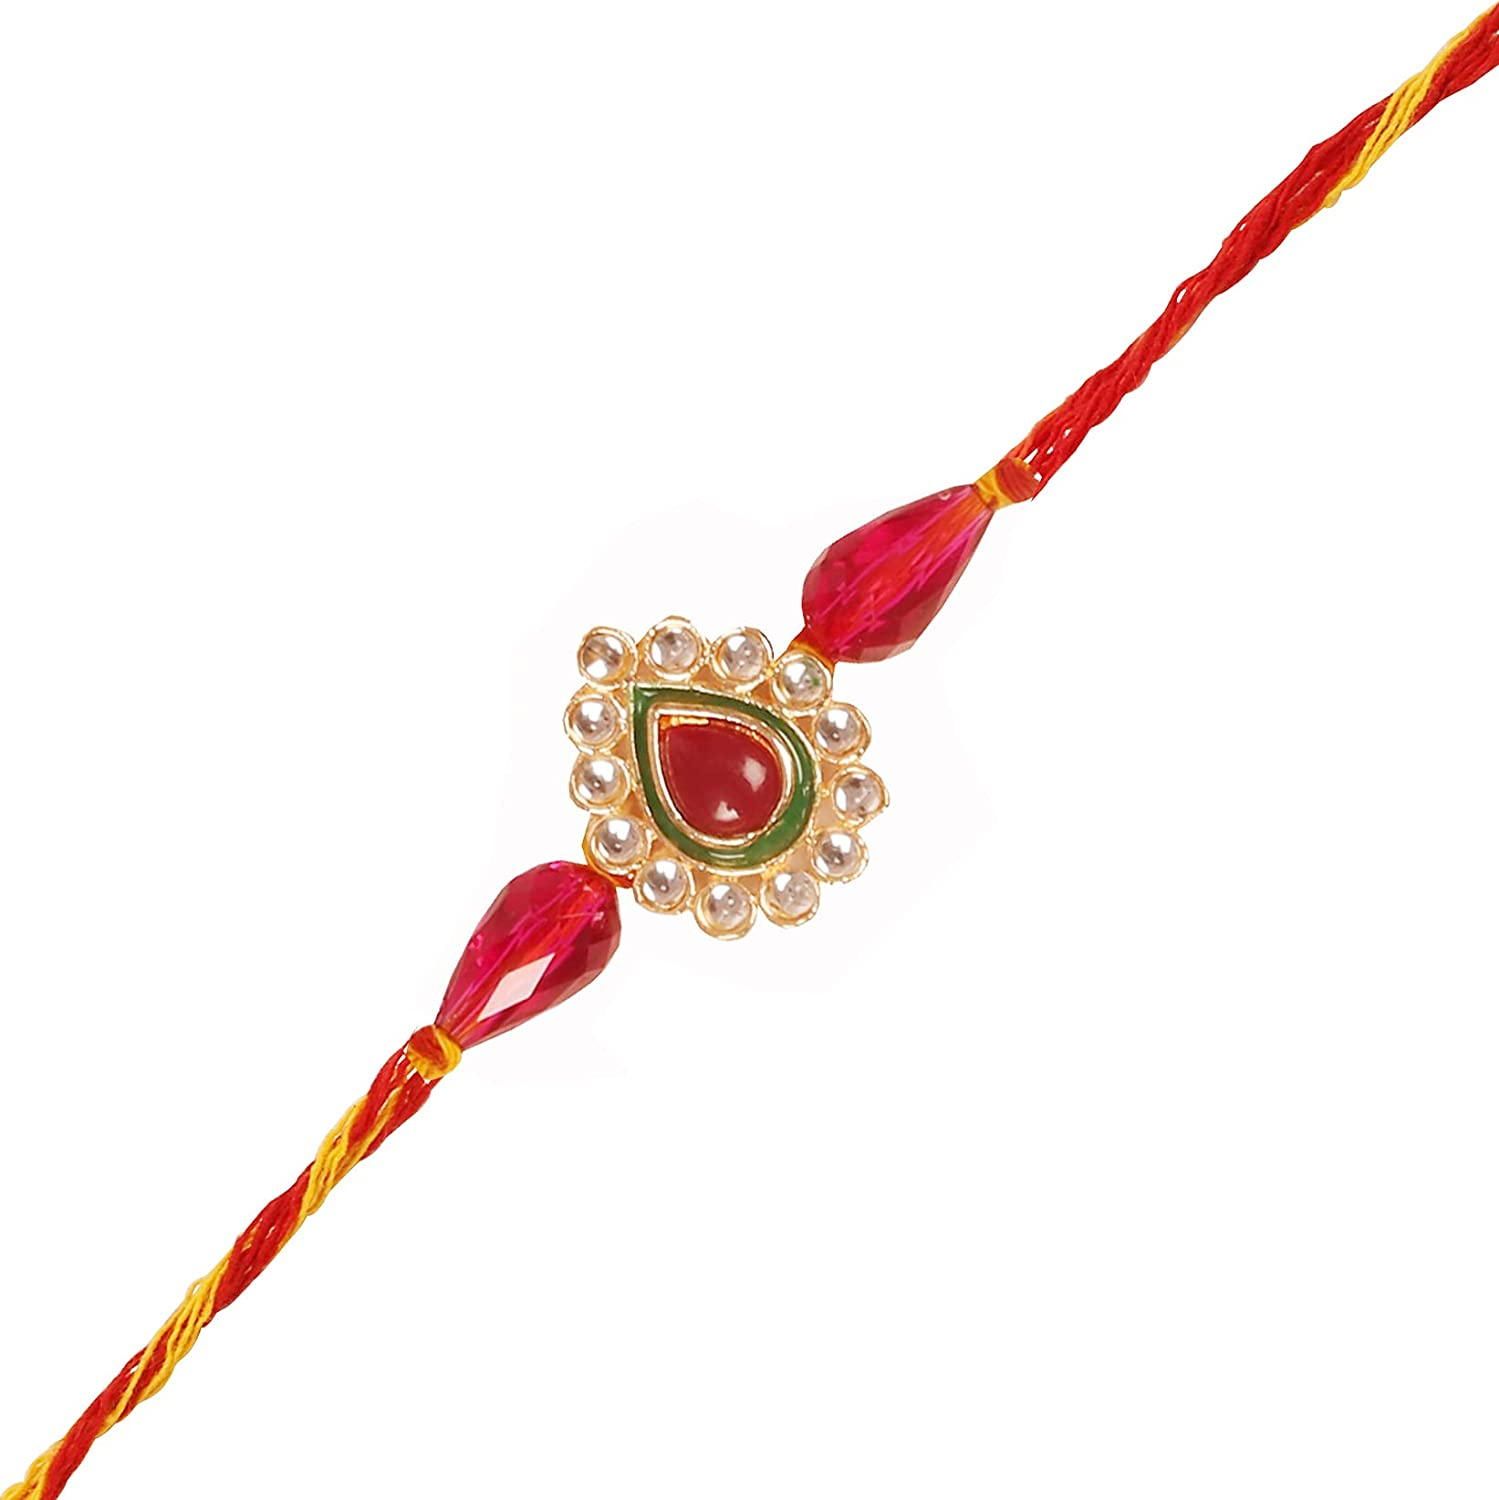 Touchstone Handcrafted Royal Mughal Kundan Look Floral Emerald Strengthening Indian Brother Sister Relations Symbolic Wrist Enhancing Designer Rakhi for Brothers.